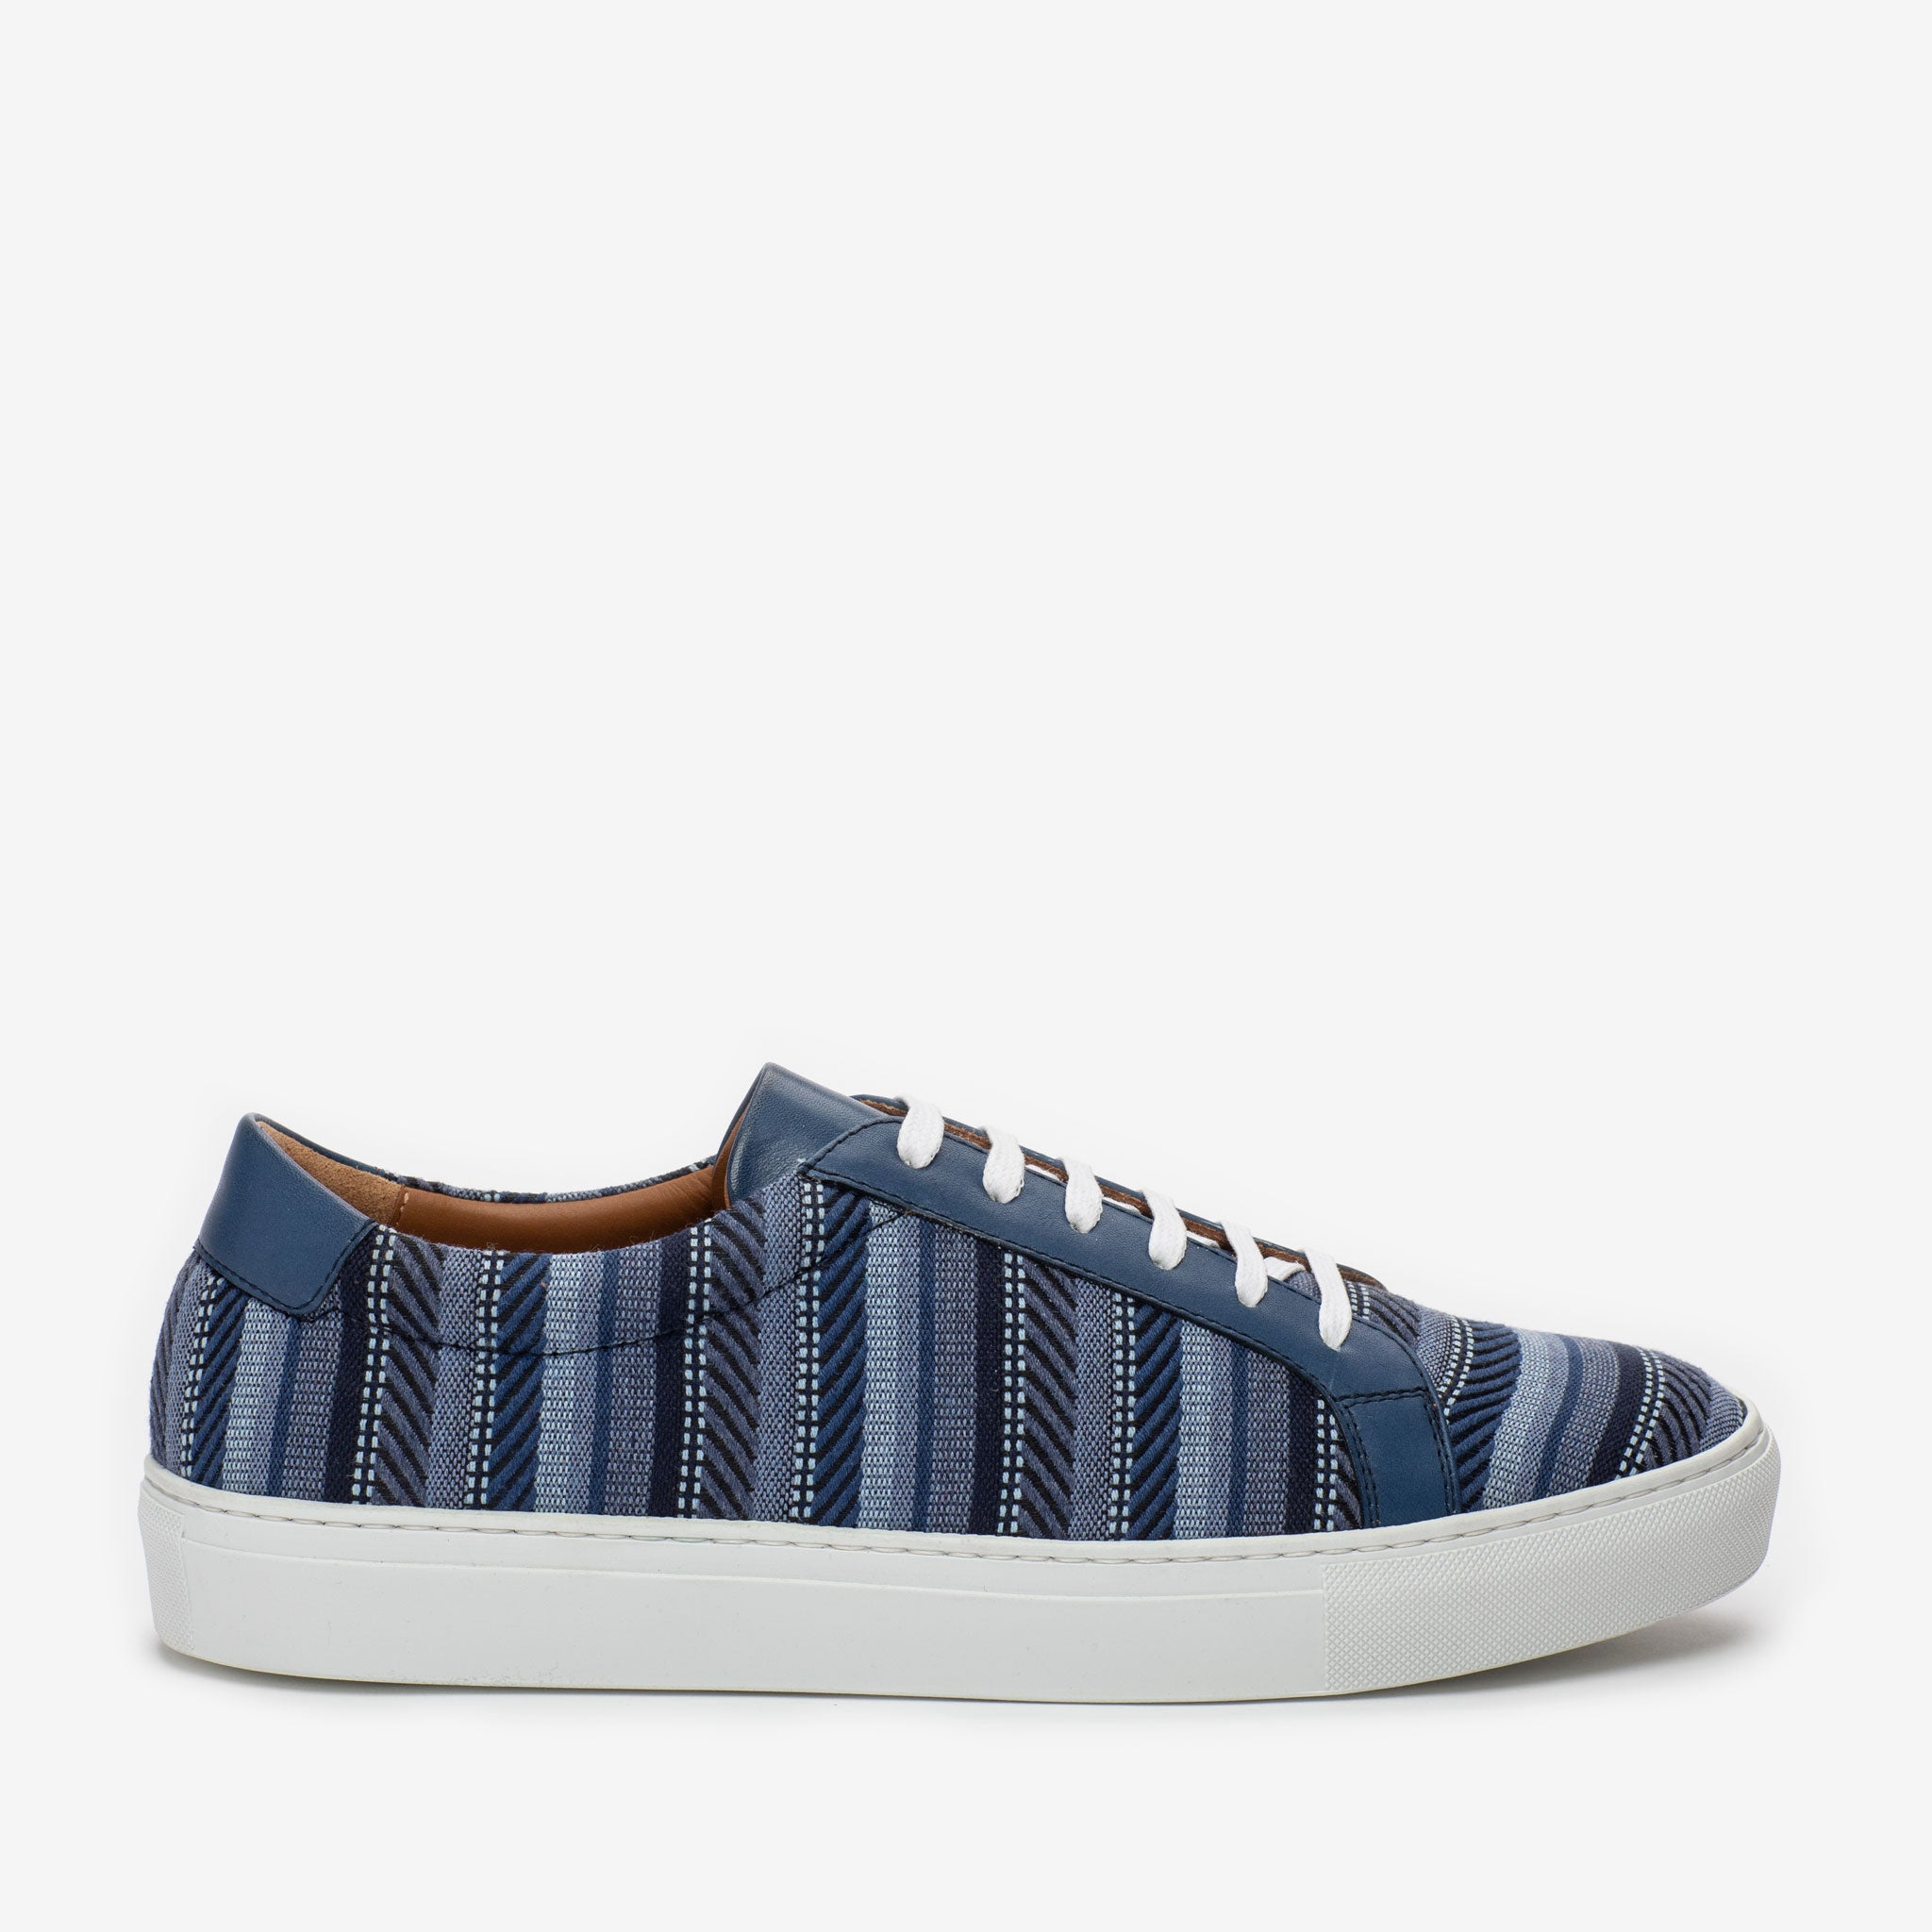 The Sneaker in Blue Stripes